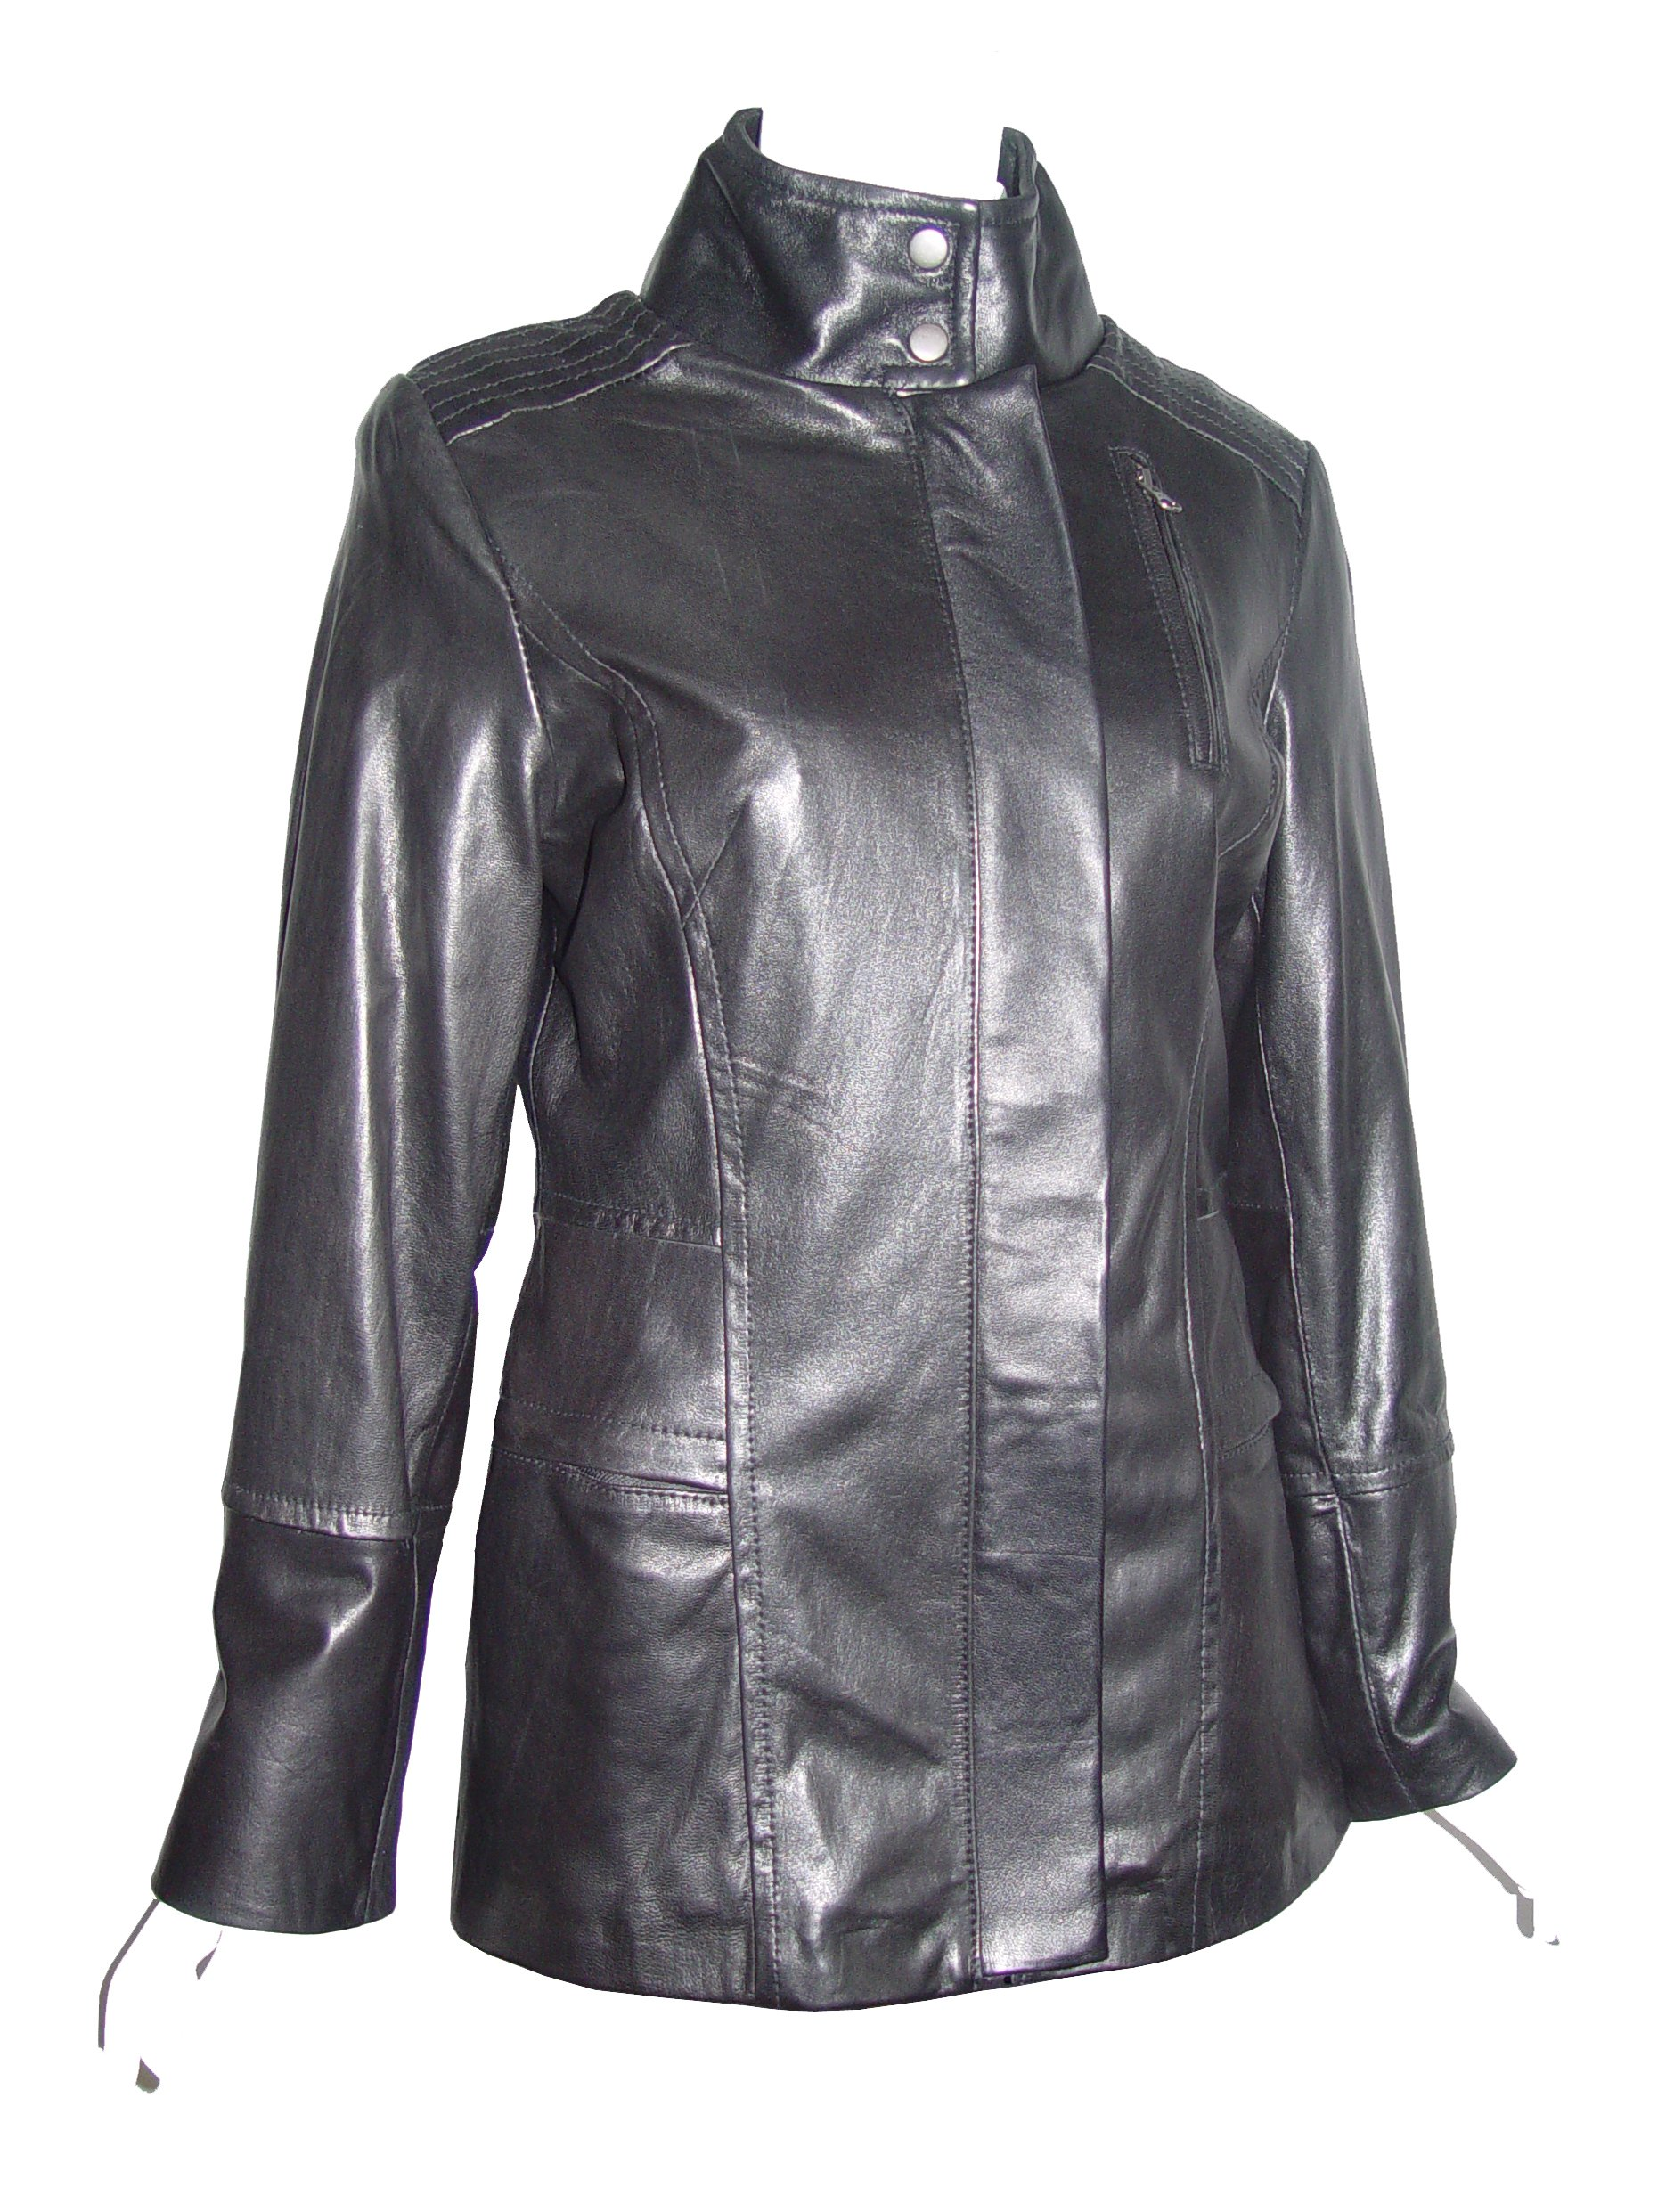 Nettailor 4188 Leather Jackets Clothes Ladies Soft Lamb by Paccilo (Image #5)